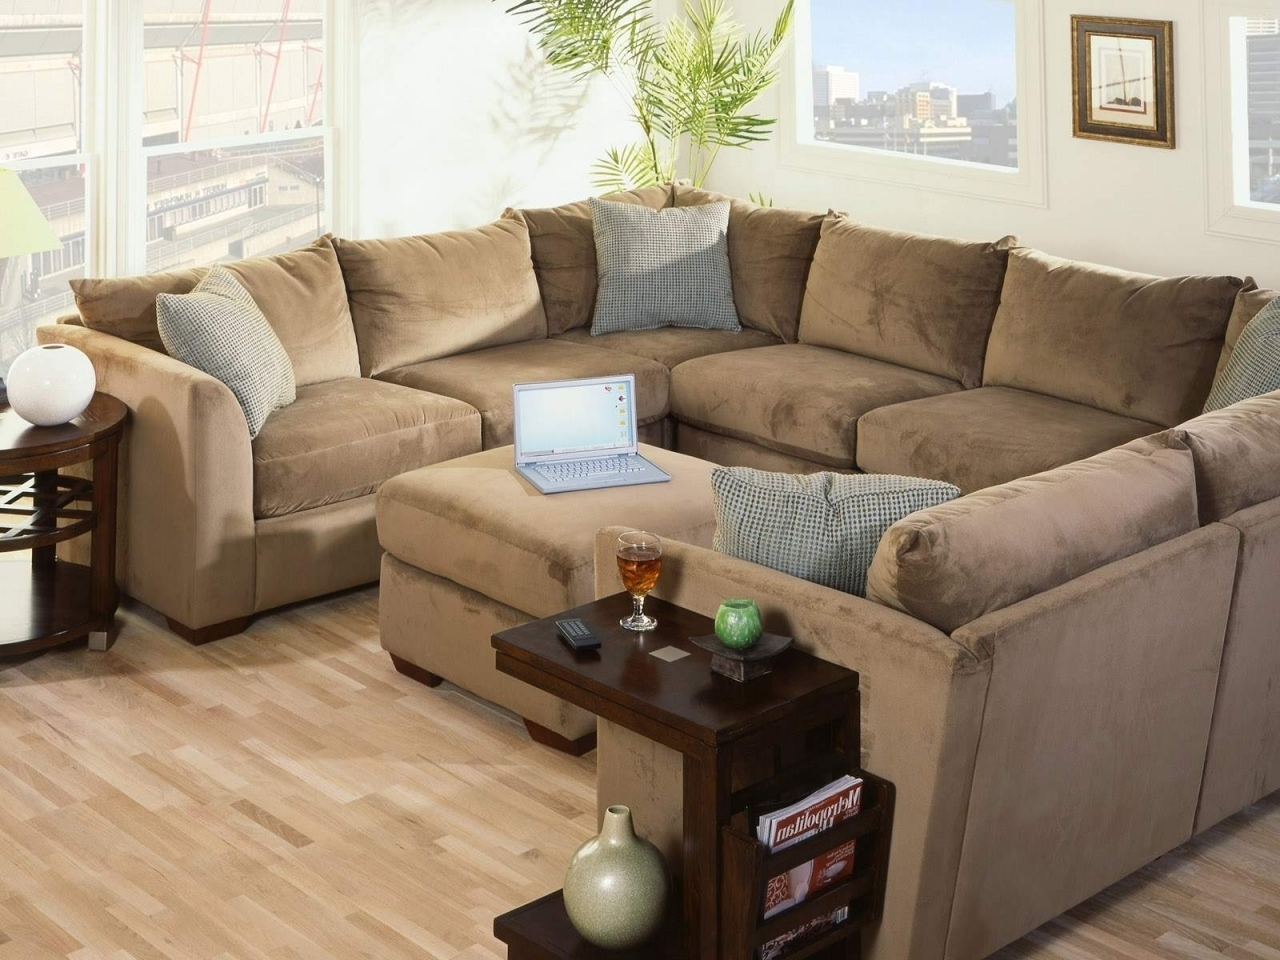 Best And Newest Amazing Sectional Couches Big Lots 77 On Contemporary Sofa With Big Lots Sofas (View 6 of 20)